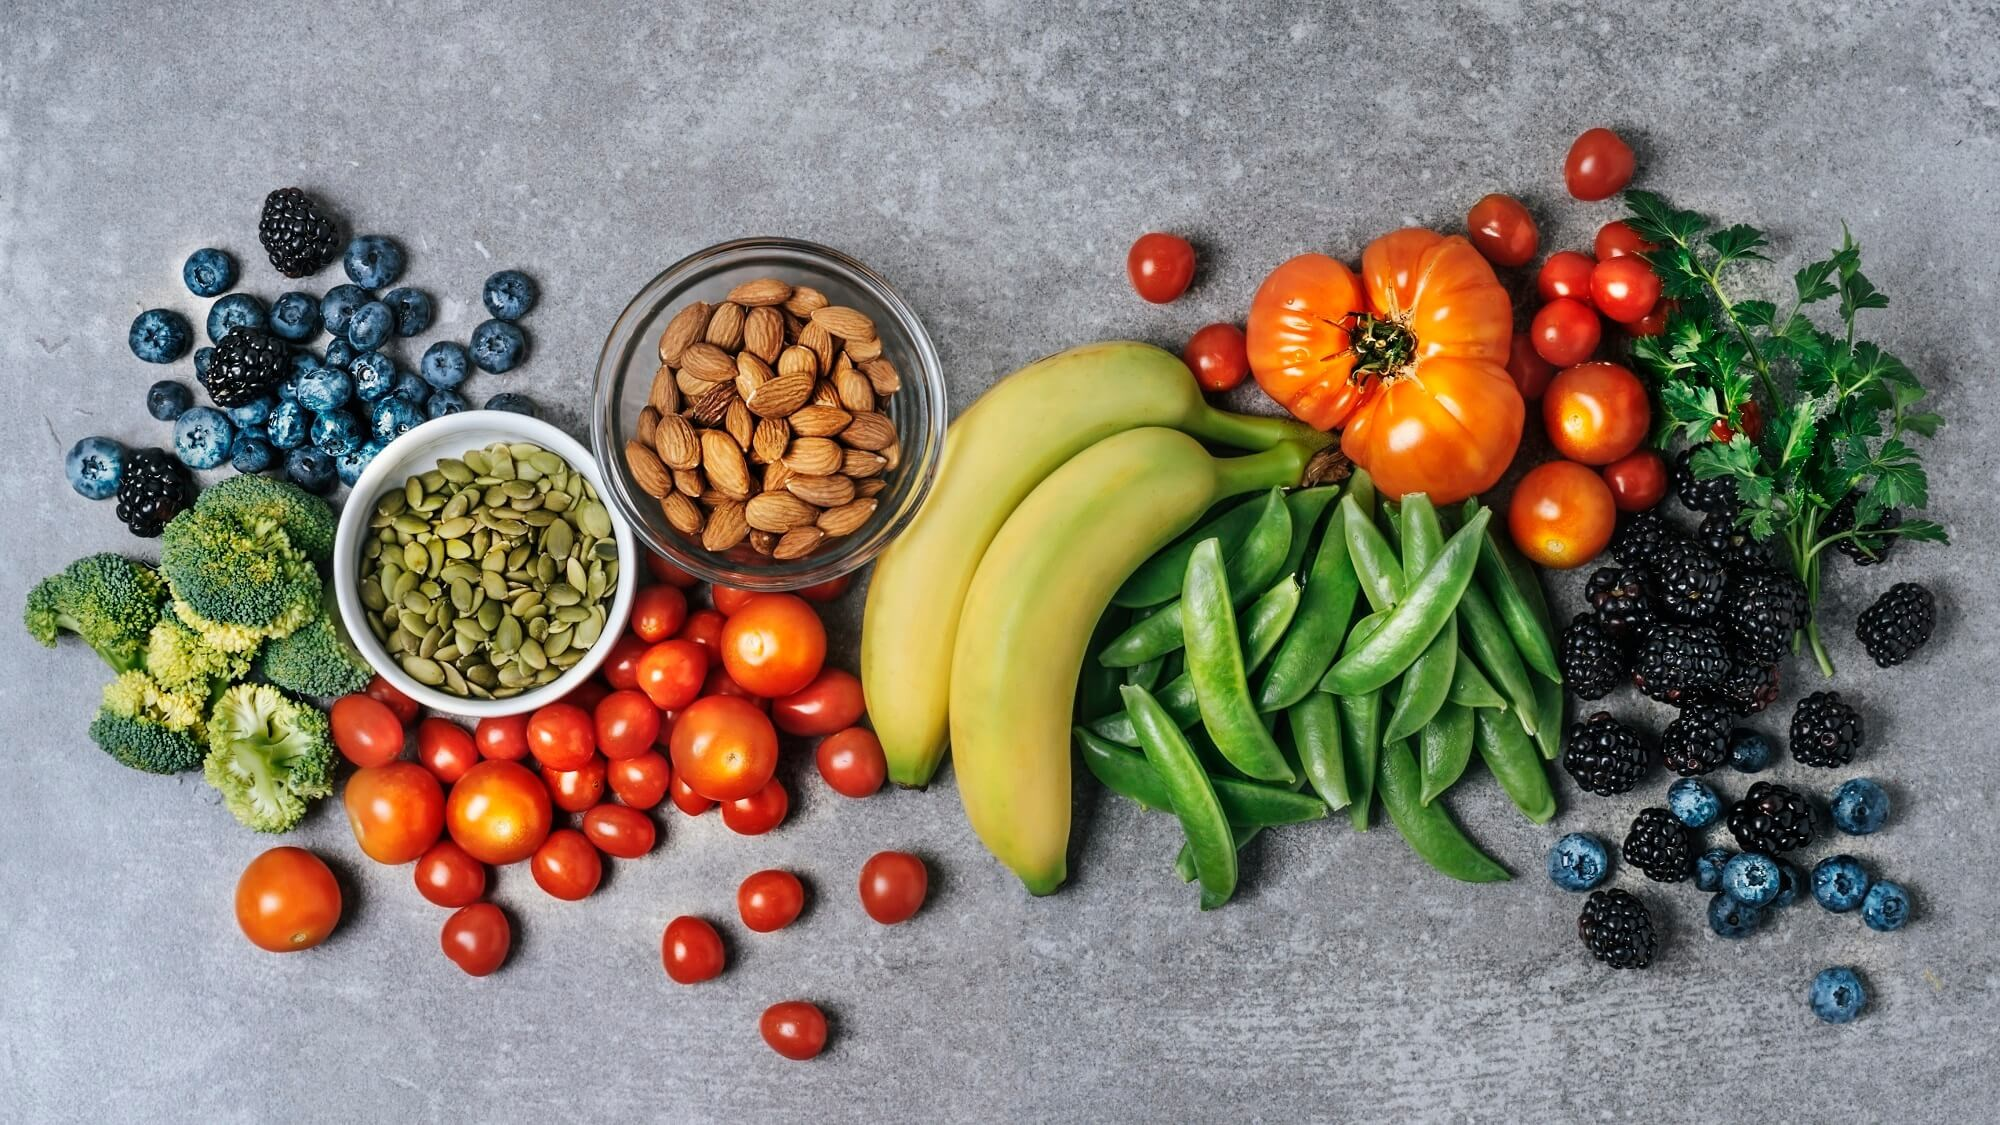 Health Experts Review and Rank Best Overall Diets for 2019